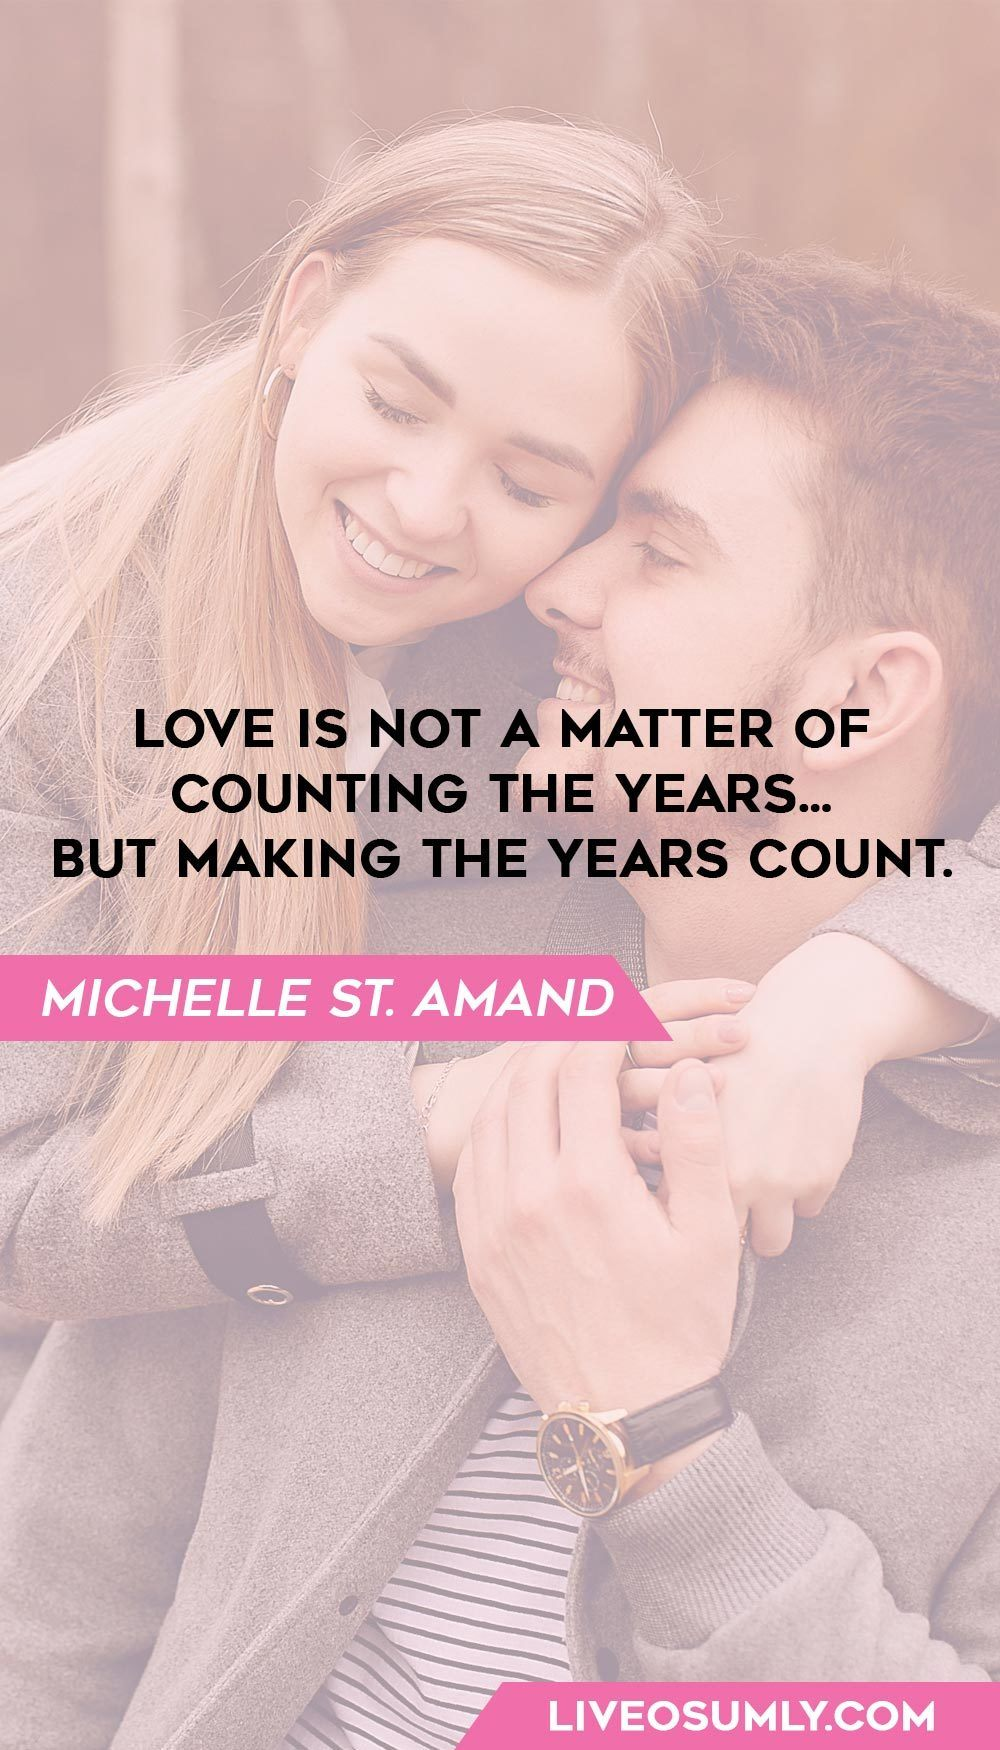 Michelle St. Amand Quotes about Valentines Day